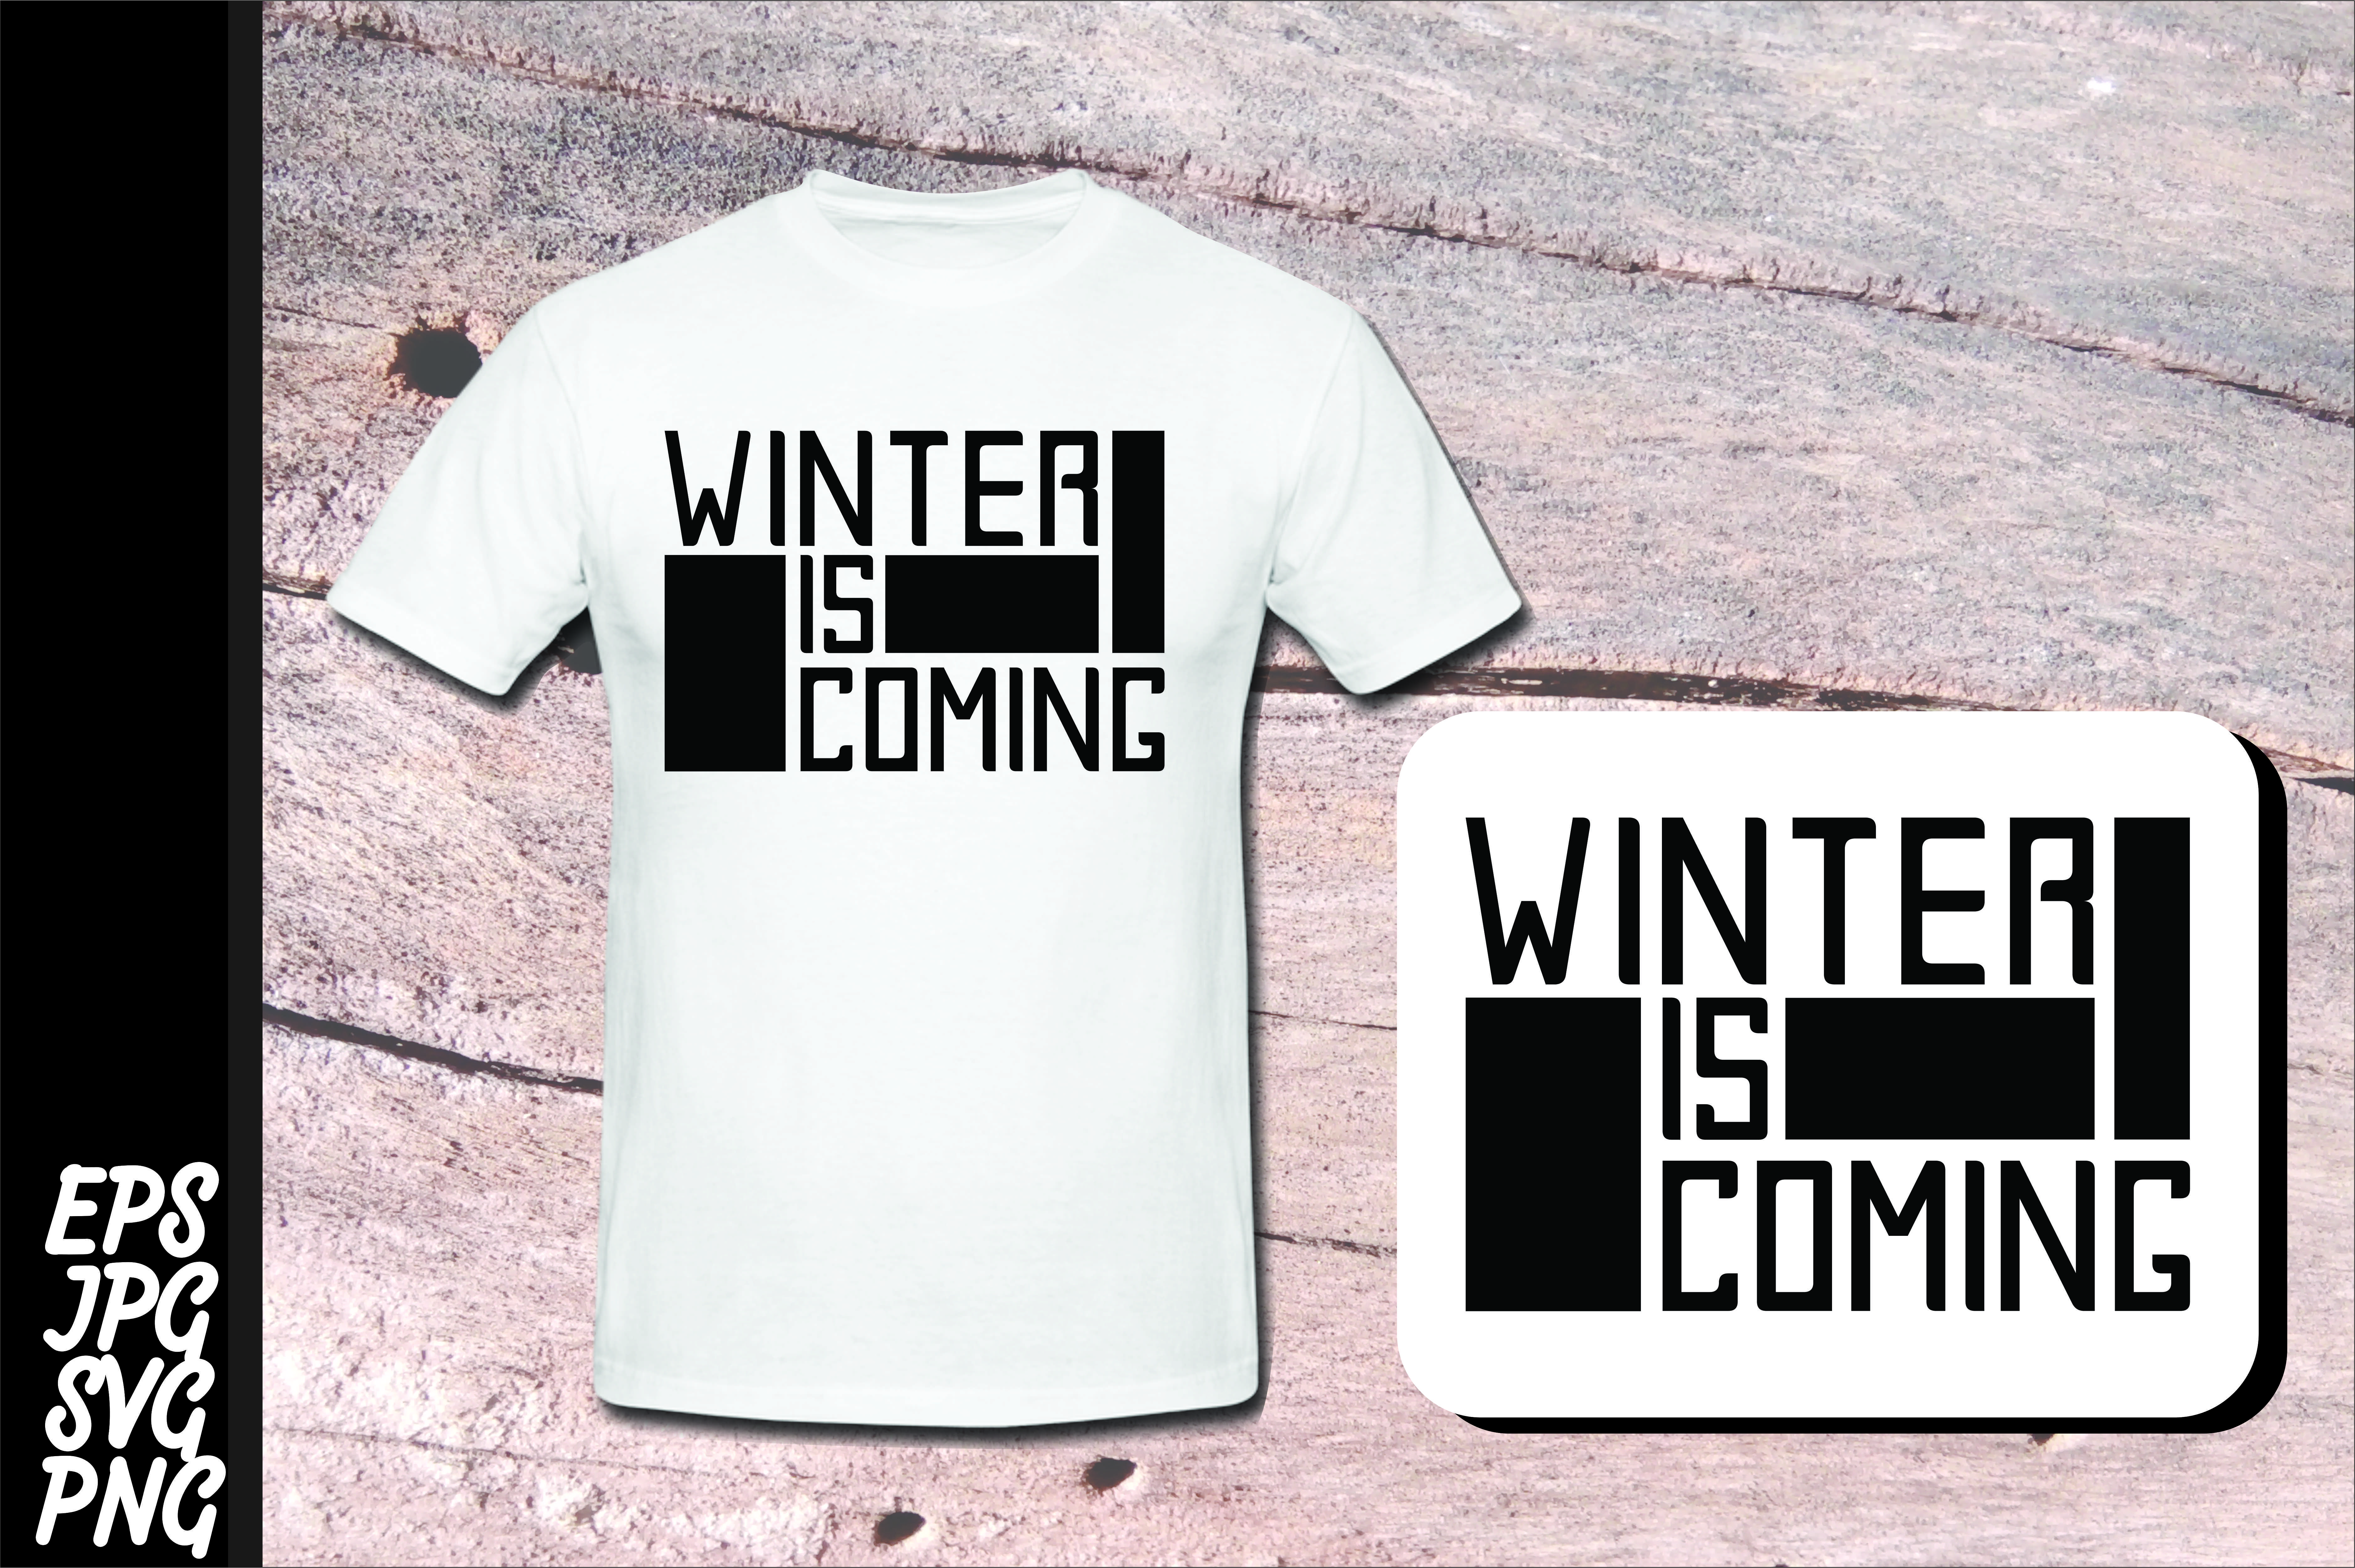 Download Free Winter Winter Is Coming Svg Graphic By Arief Sapta Adjie for Cricut Explore, Silhouette and other cutting machines.